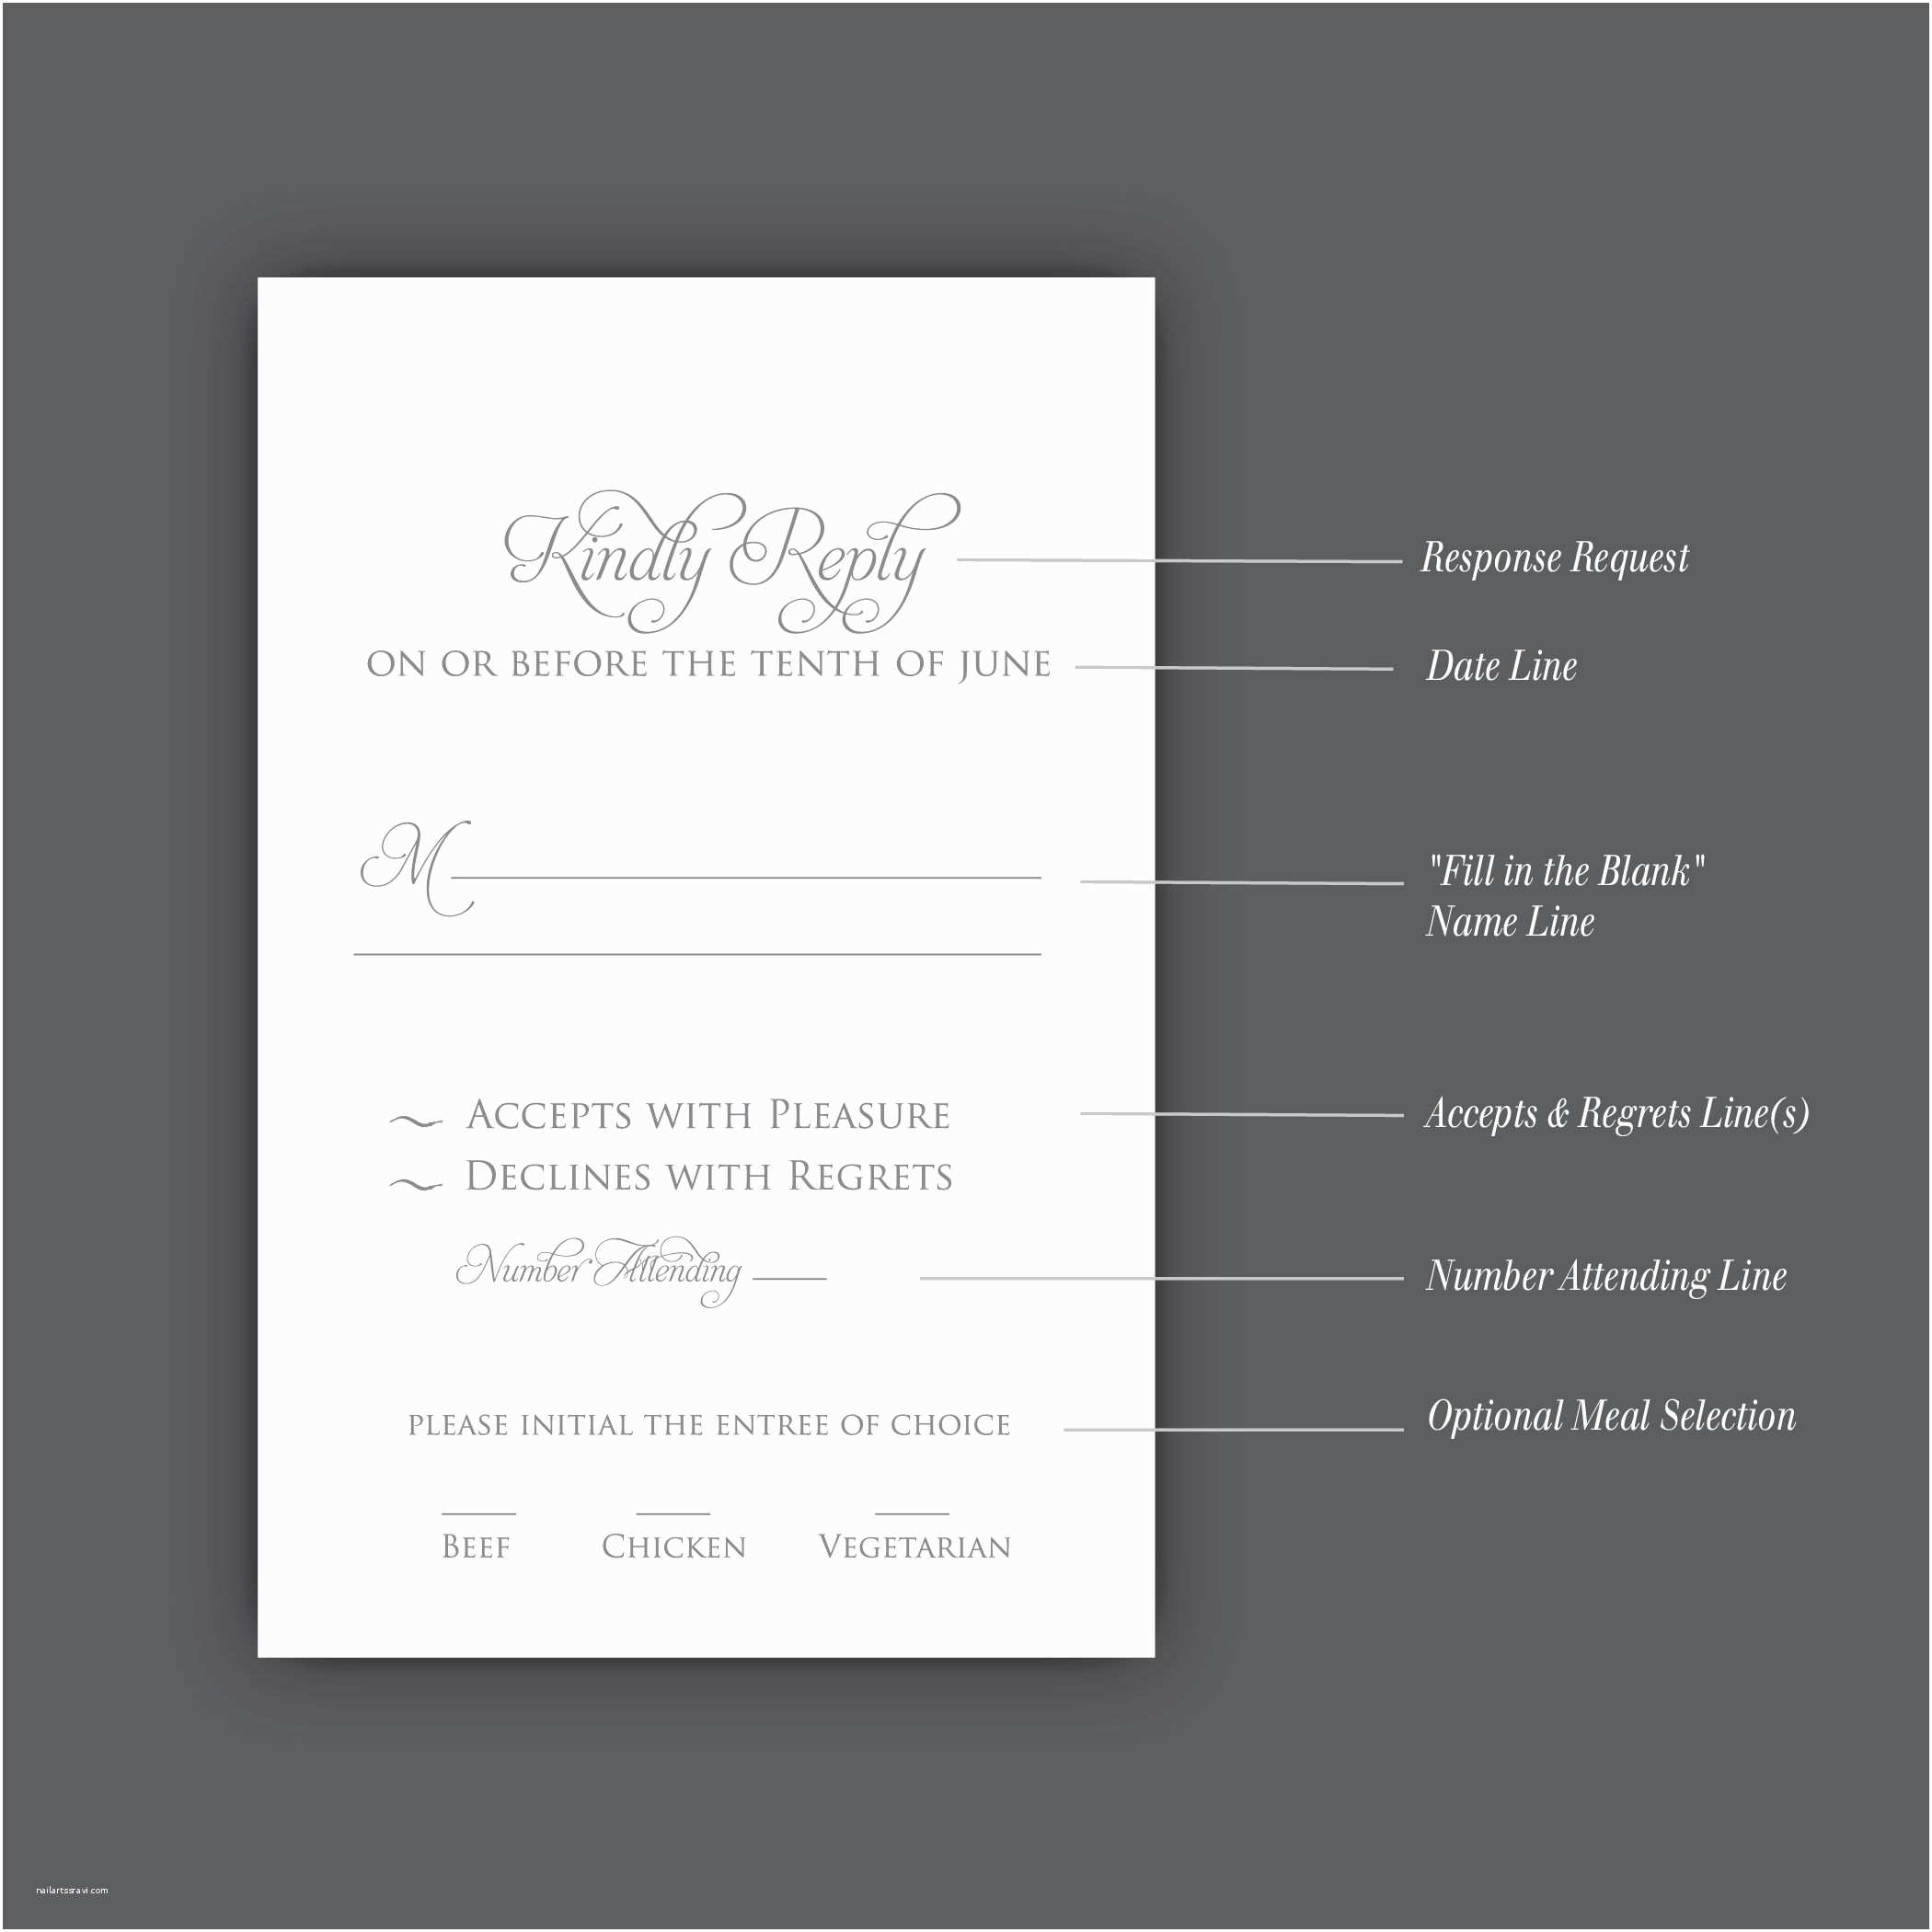 Wedding Invitations and Rsvp How to Correctly Word Your Wedding Rsvp Card